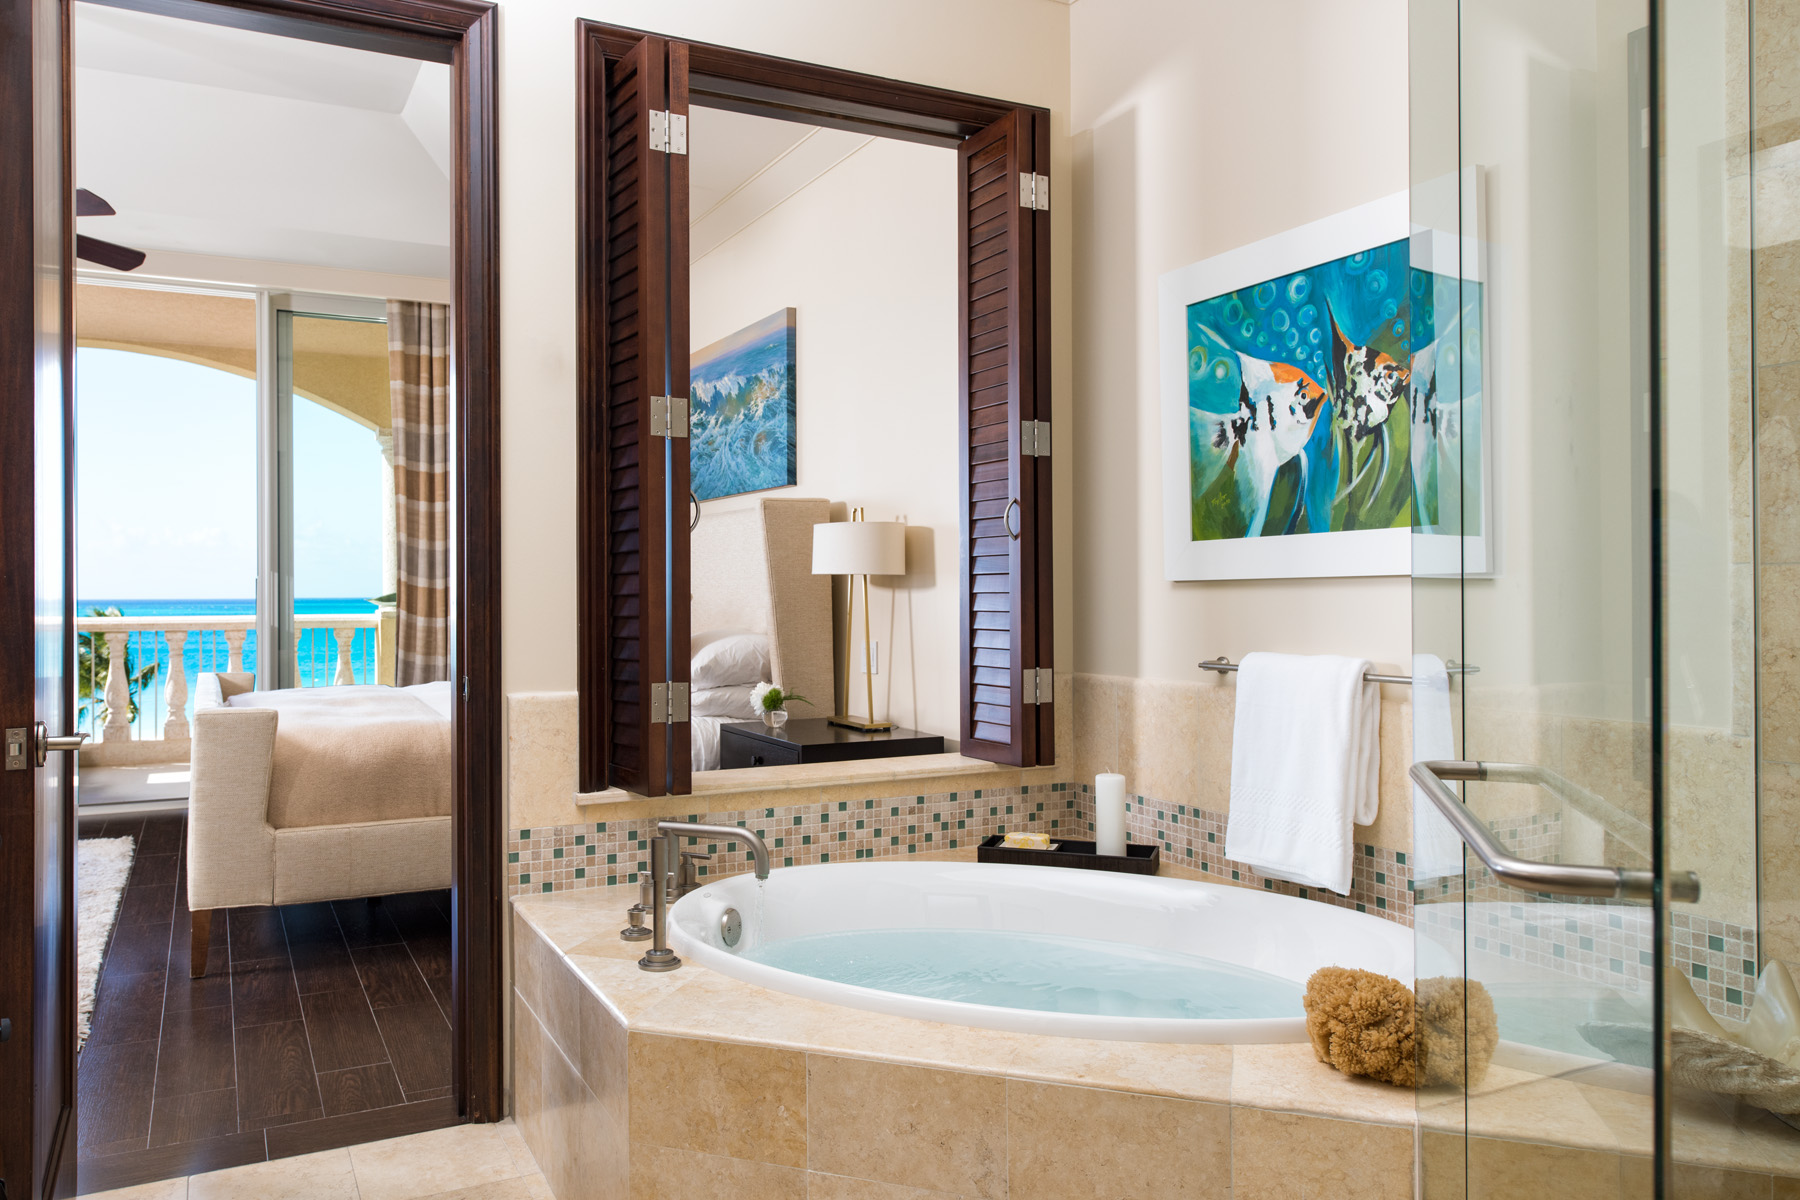 Additional photo for property listing at The Estate at Grace Bay Club G301 Grace Bay Resorts, Grace Bay, Providenciales Turks And Caicos Islands